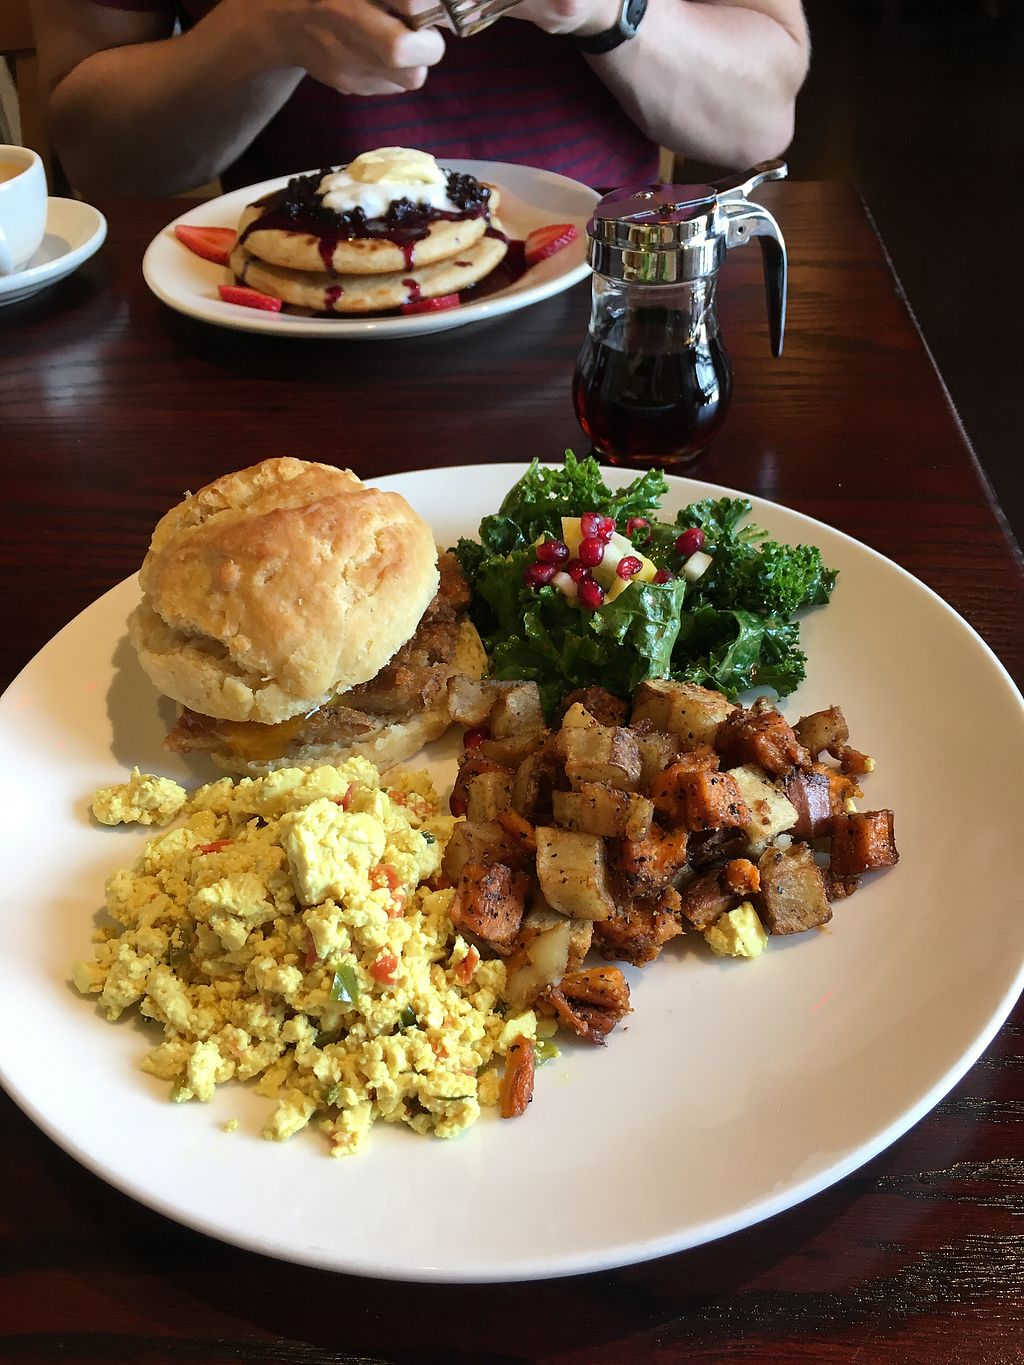 """Photo of Cafe Sunflower - Buckhead  by <a href=""""/members/profile/sarahpearcy"""">sarahpearcy</a> <br/>Seitan Chick'n Biscuit - Sunday Brunch Menu <br/> January 2, 2018  - <a href='/contact/abuse/image/1875/342145'>Report</a>"""